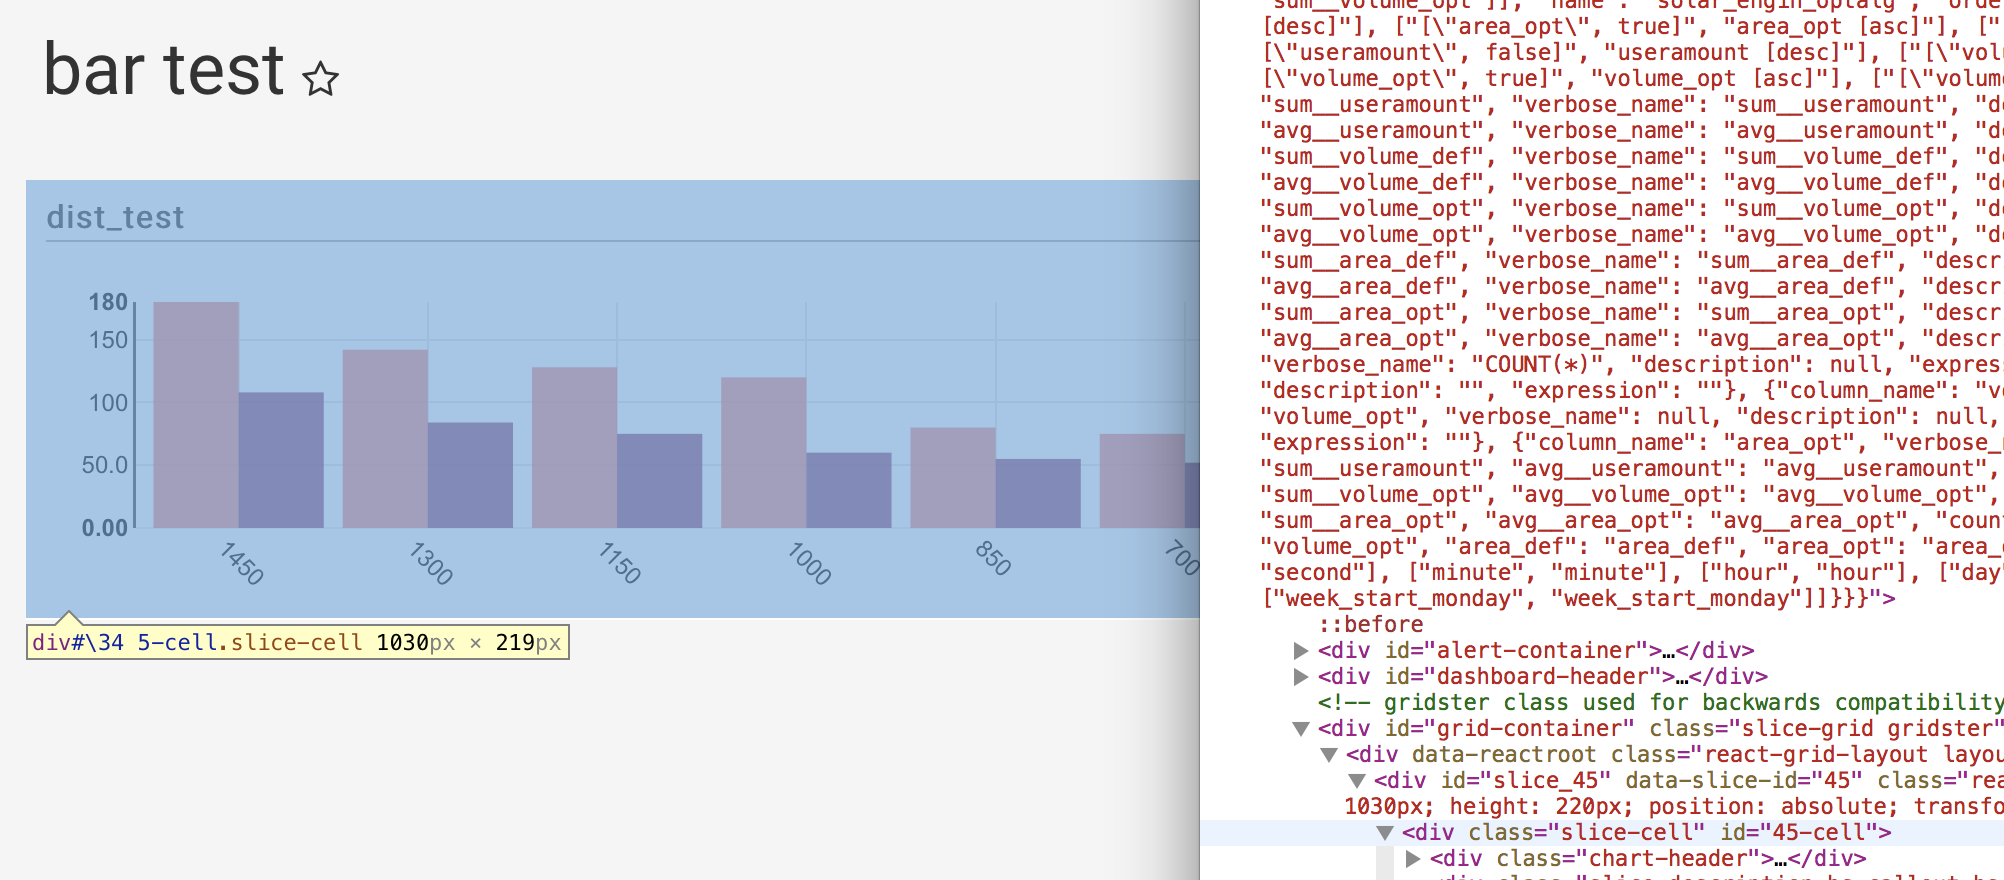 For bar charts, widths of 'row chart-container' are 20px